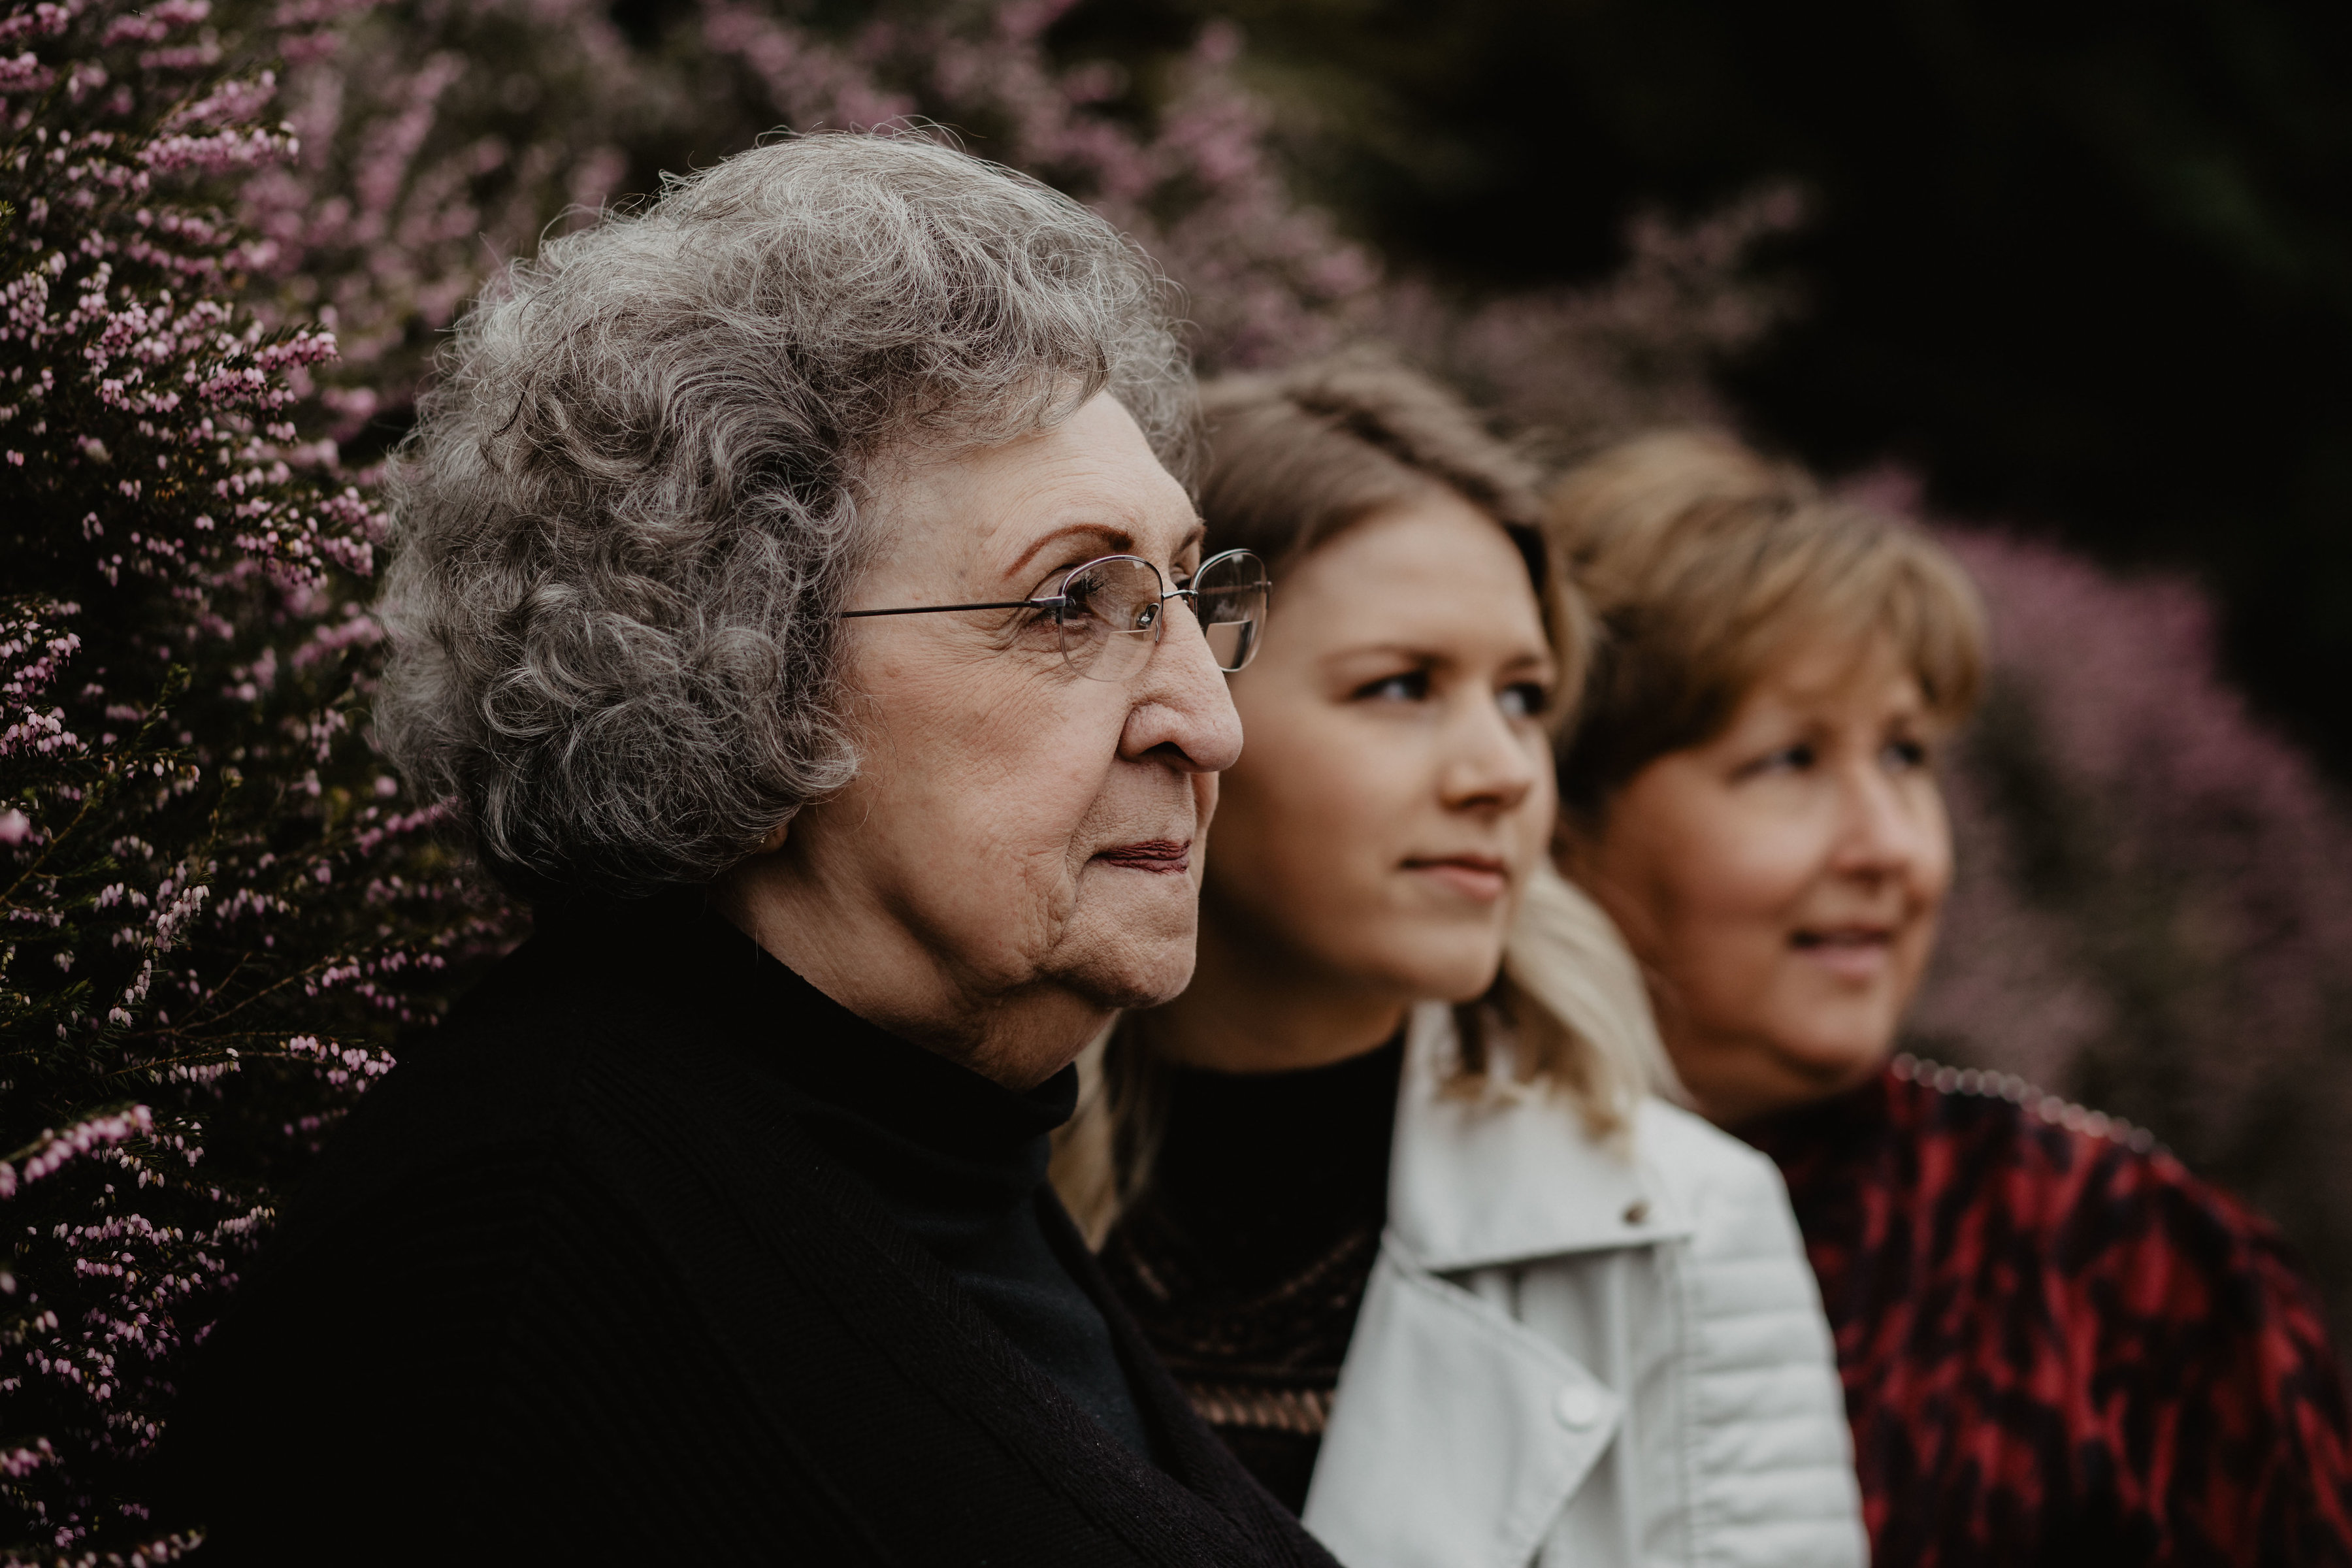 Three Generations - Daughter, Mother, Grandmother - Family Portraits